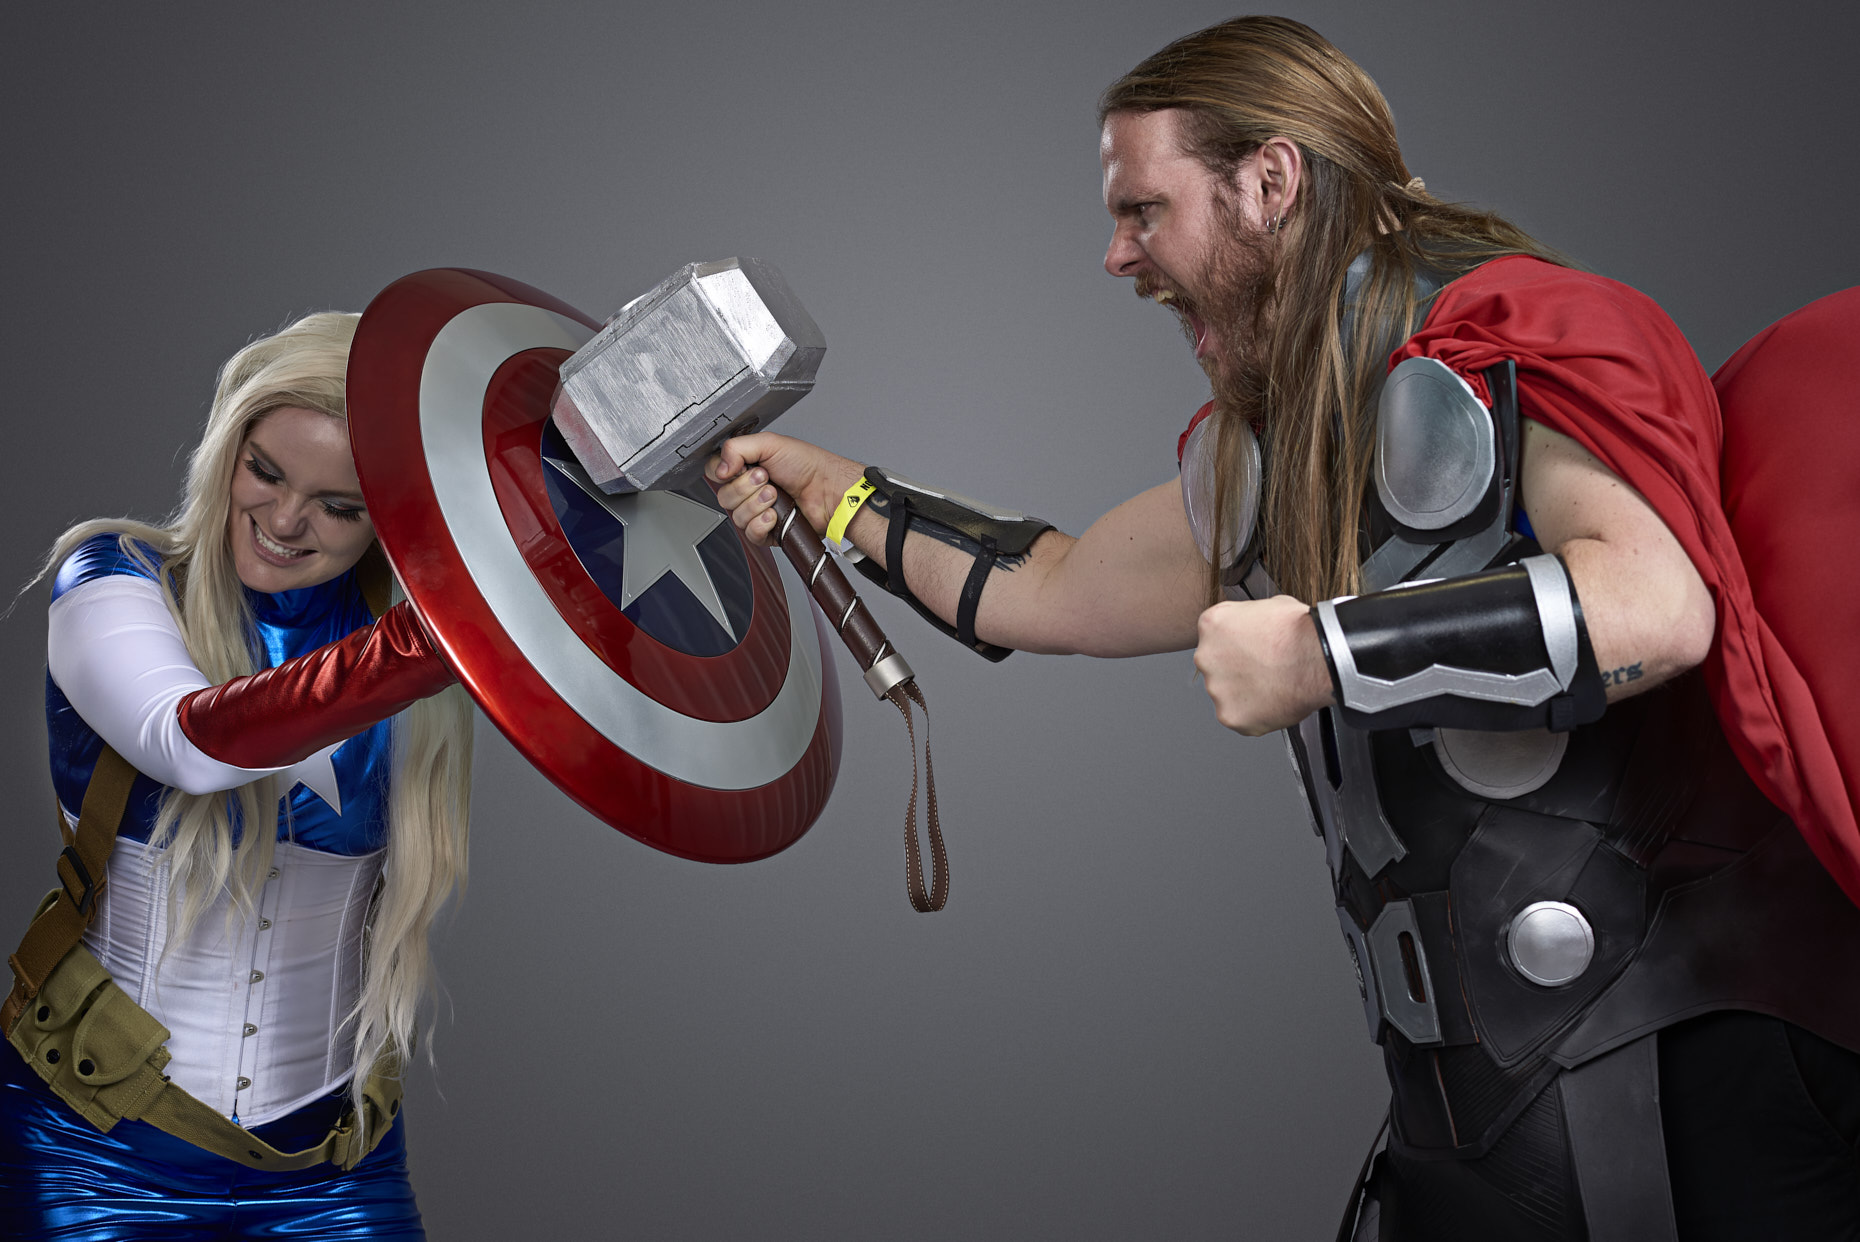 marvel-captain-america-thor-cosplayers